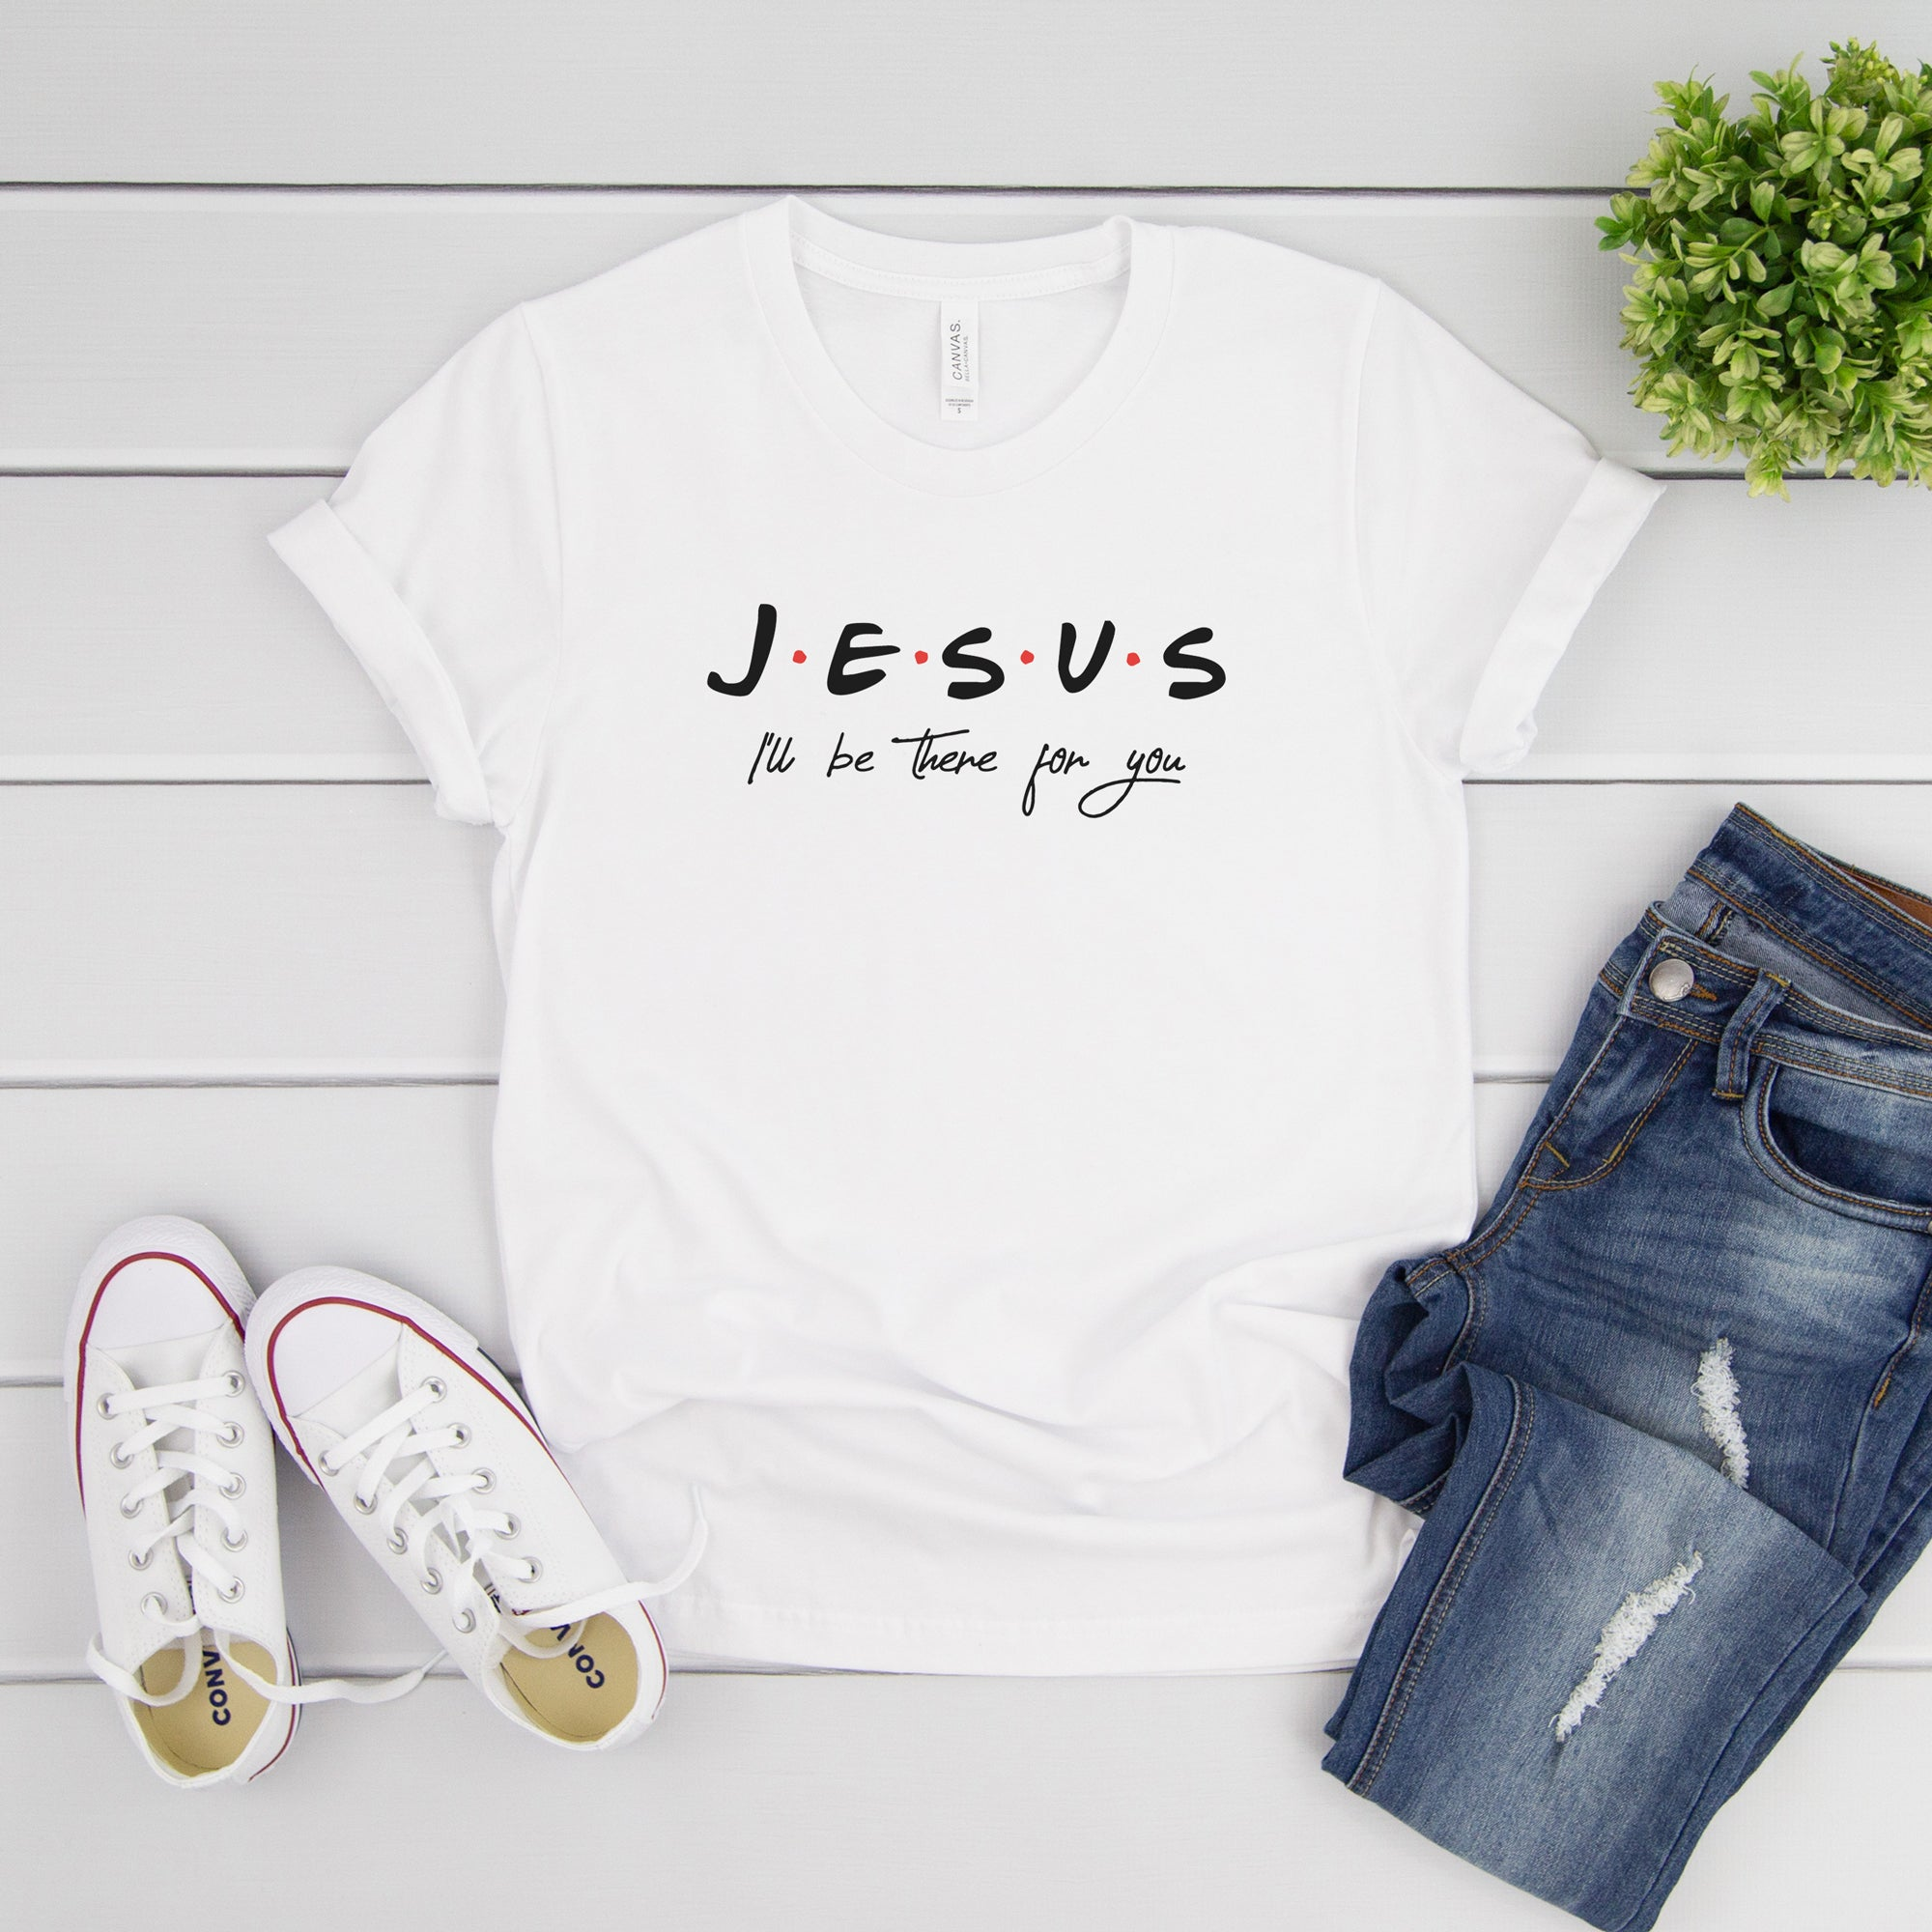 Graphic t-shirt lifestyle flatlay - Peculiar People Designs